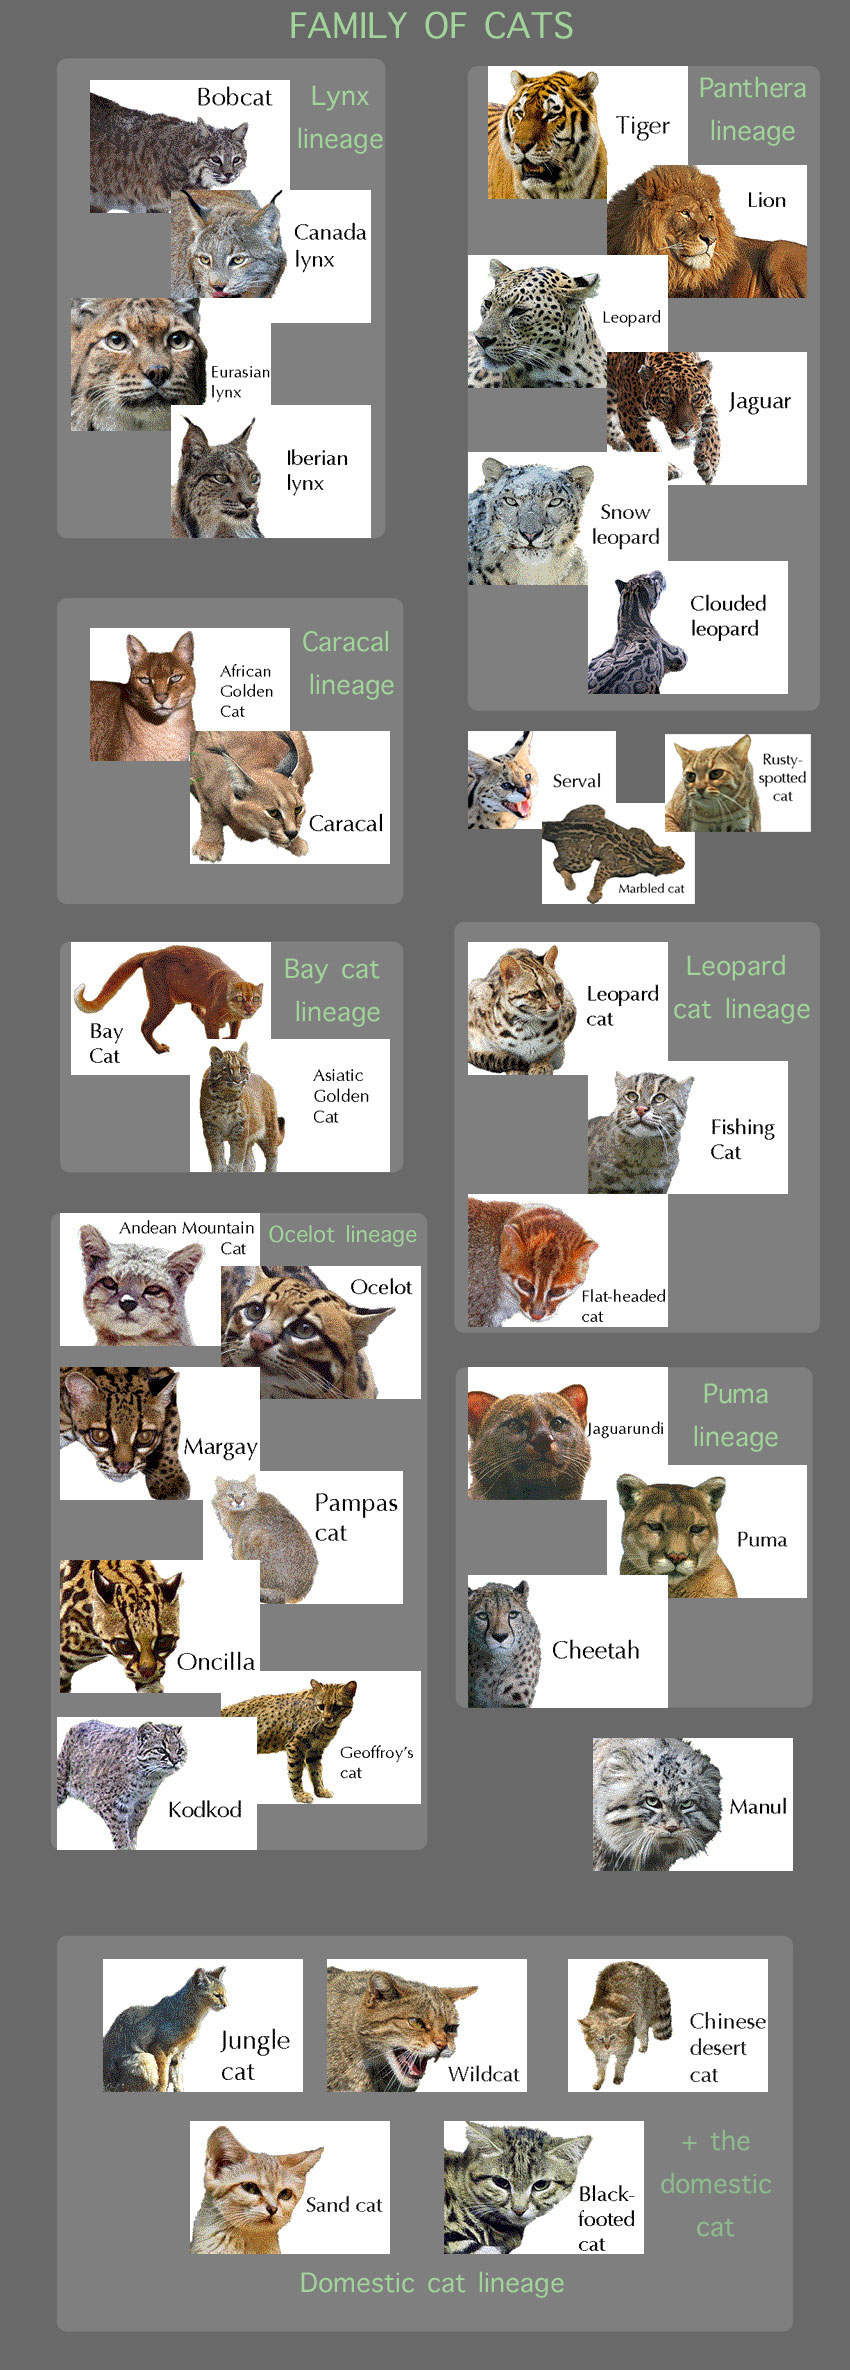 Wild Cat Facts For Kids